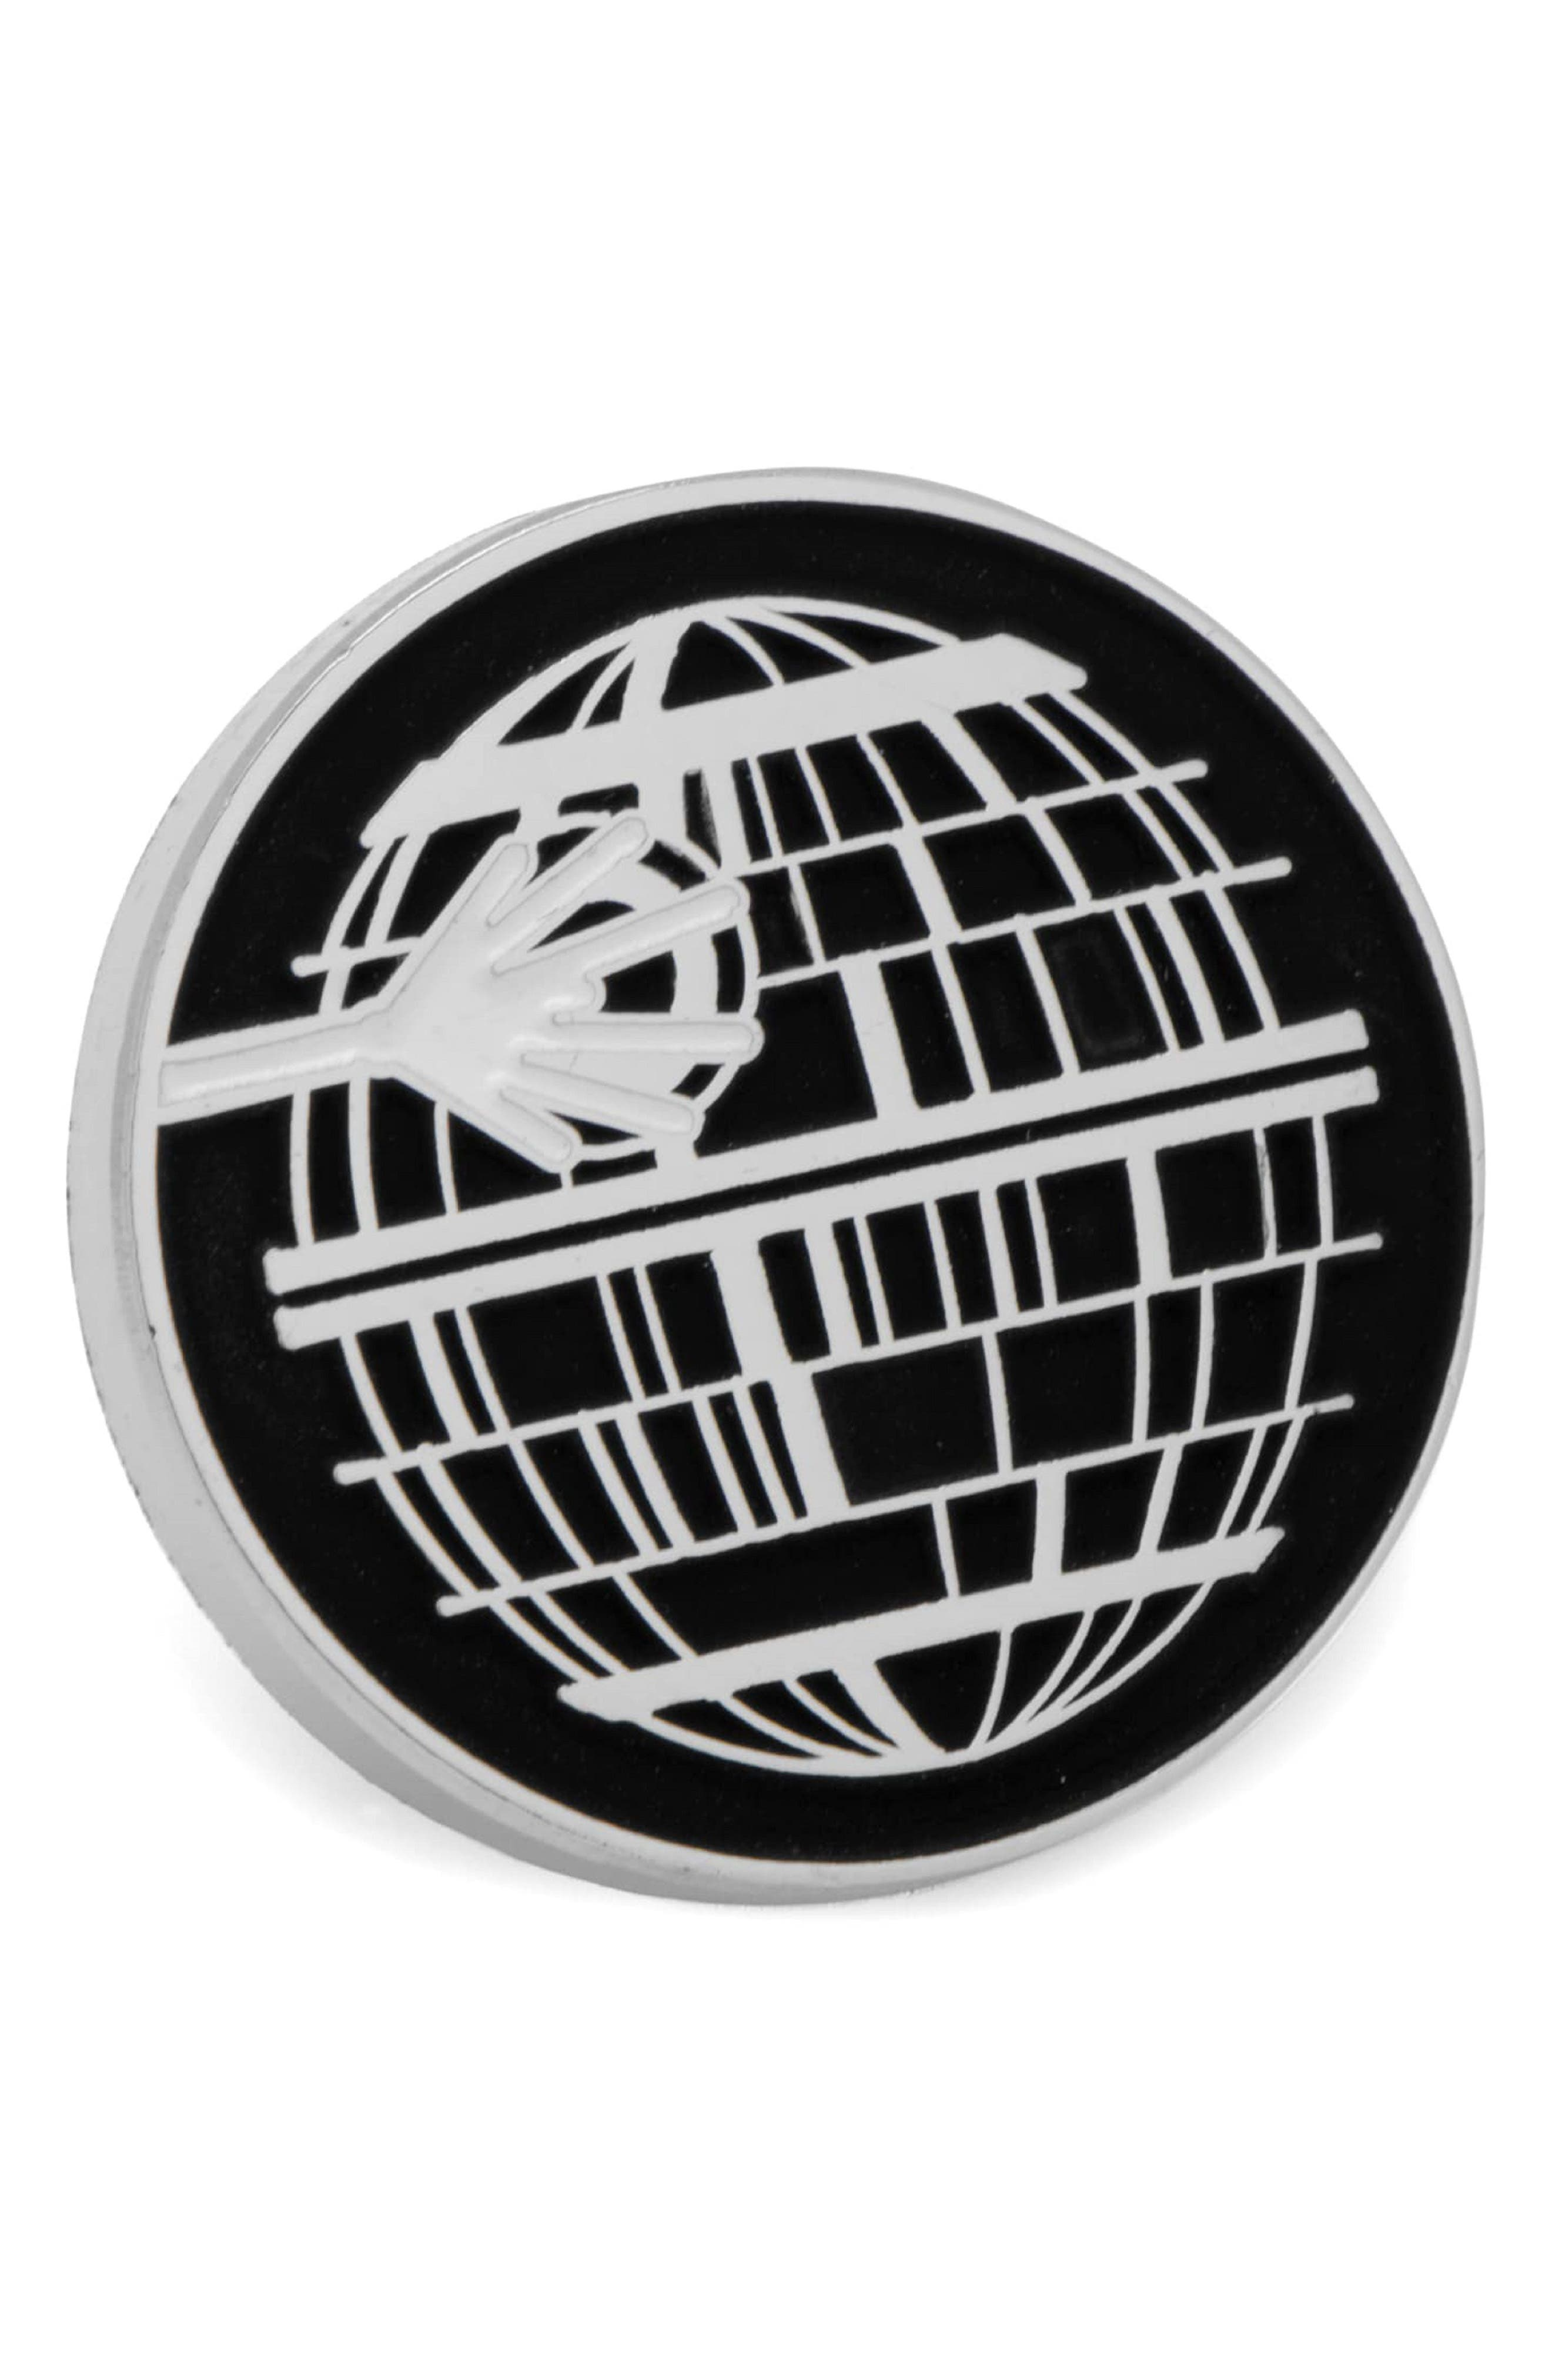 Star Wars<sup>™</sup> - Death Star Lapel Pin,                         Main,                         color, 040